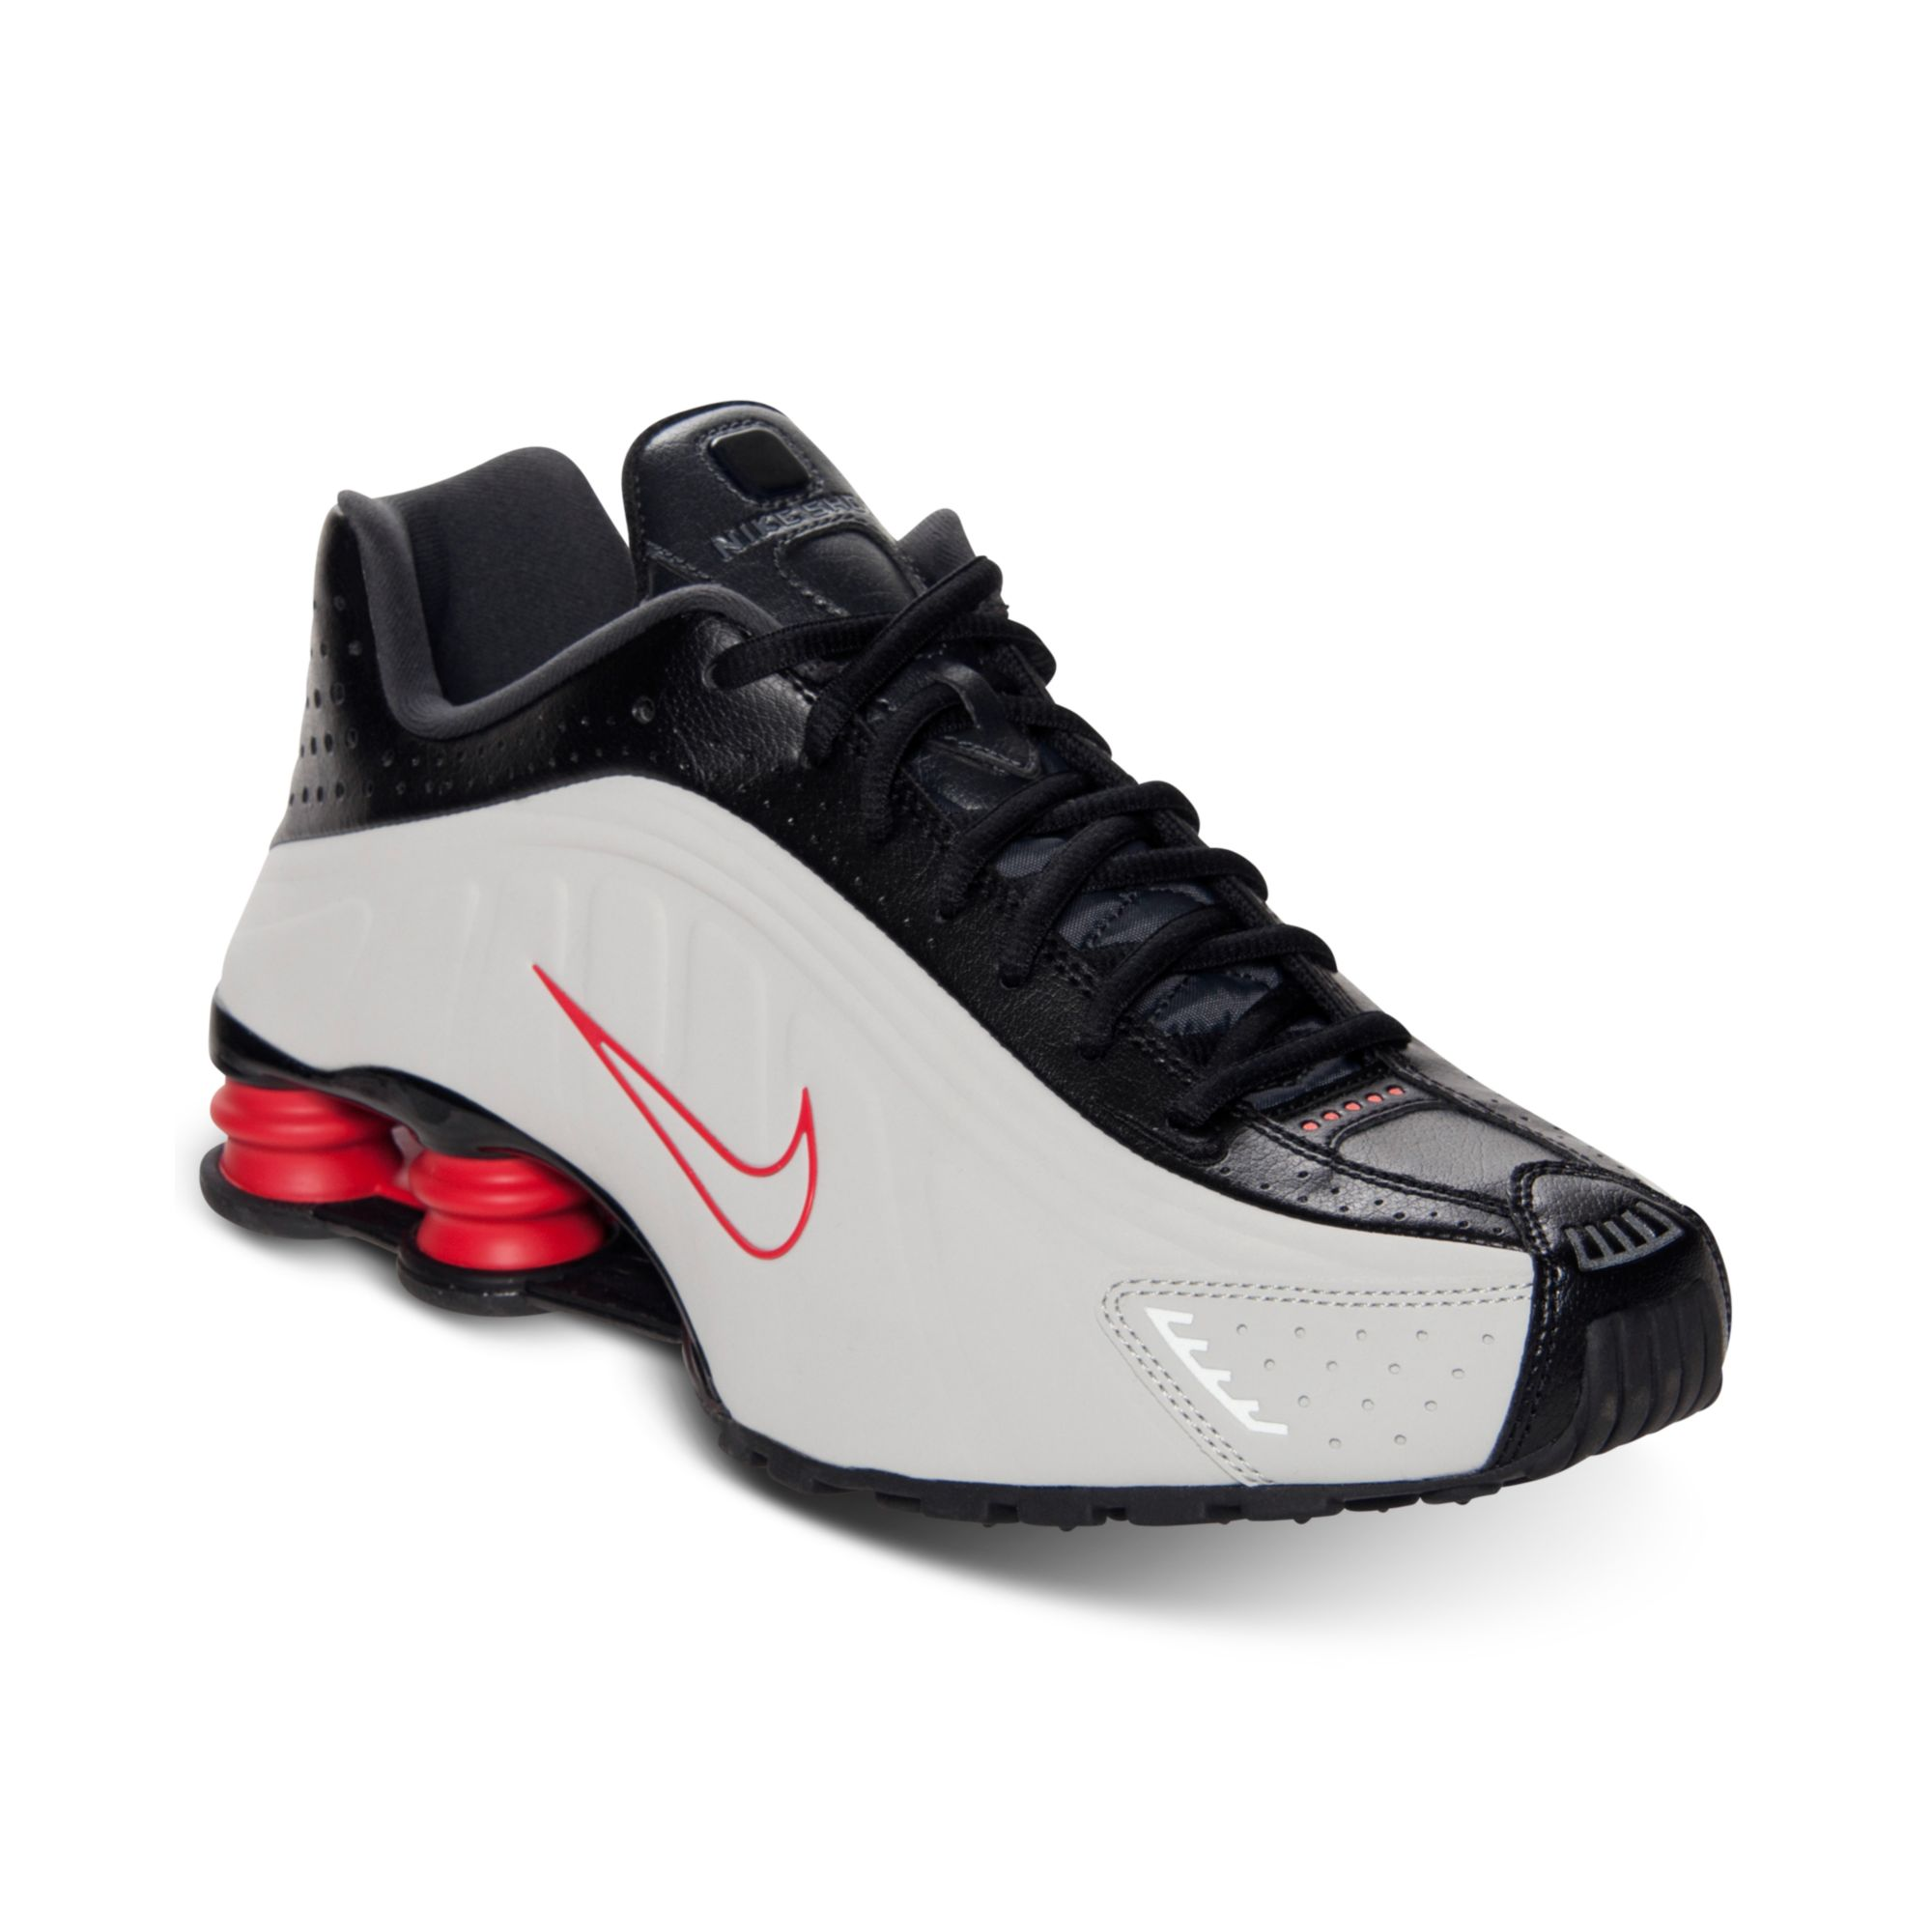 low priced 40770 99650 ... shop lyst nike mens shox r4 running shoes from finish line in black for  men 19104